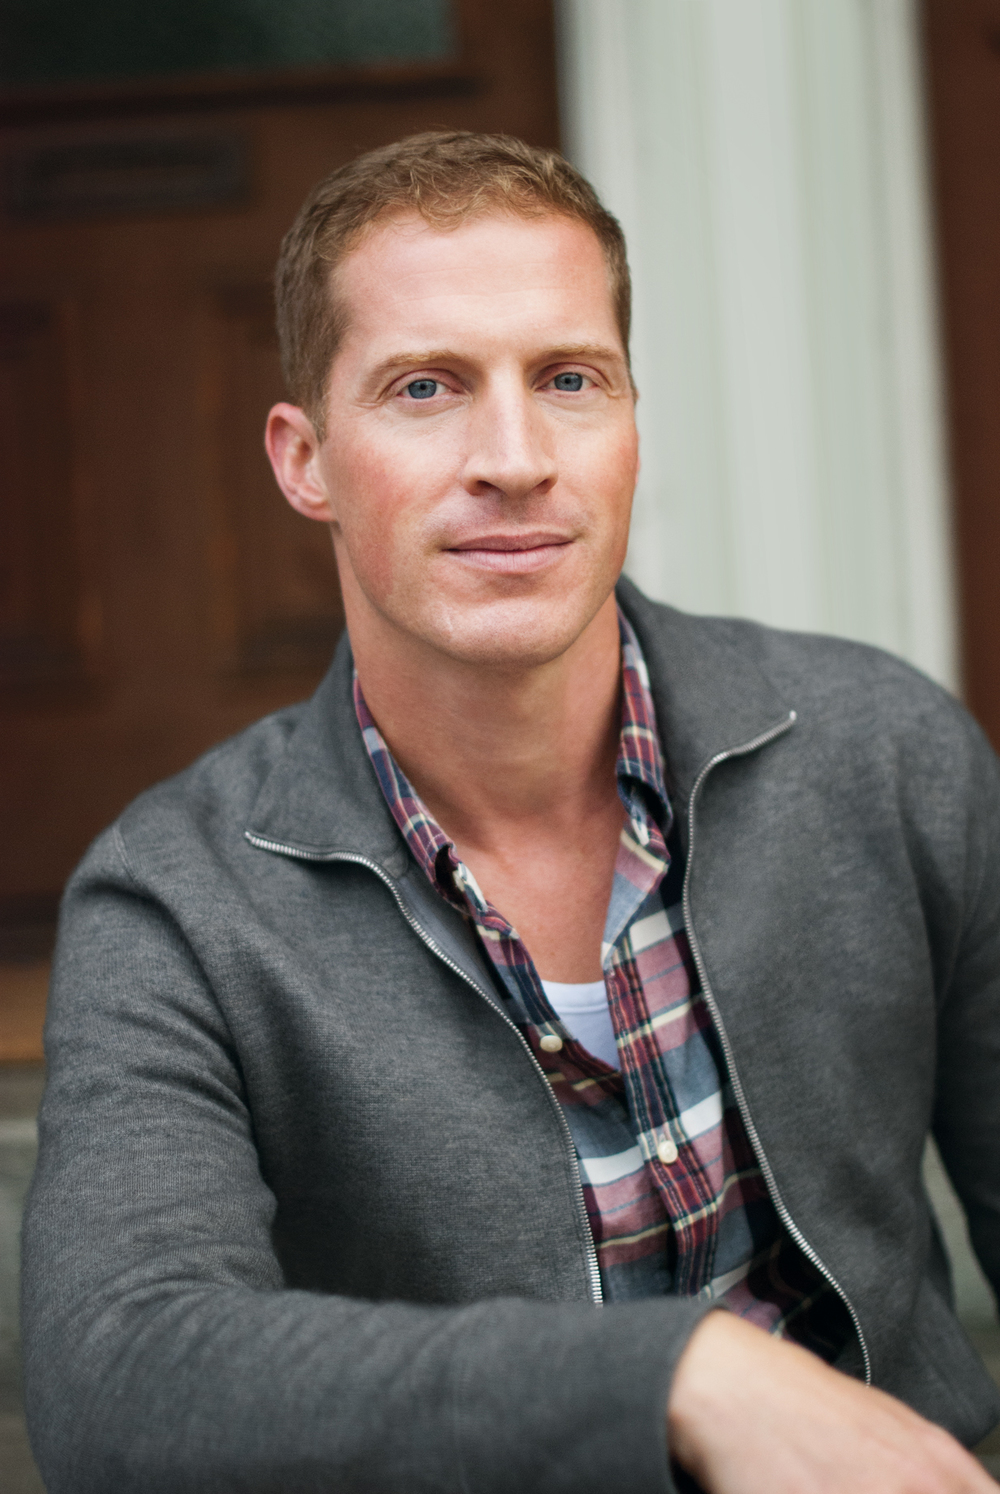 Andrew Sean Greer, was a visiting writer in the fall of 2015, and recently won the Pulitzer for fiction.